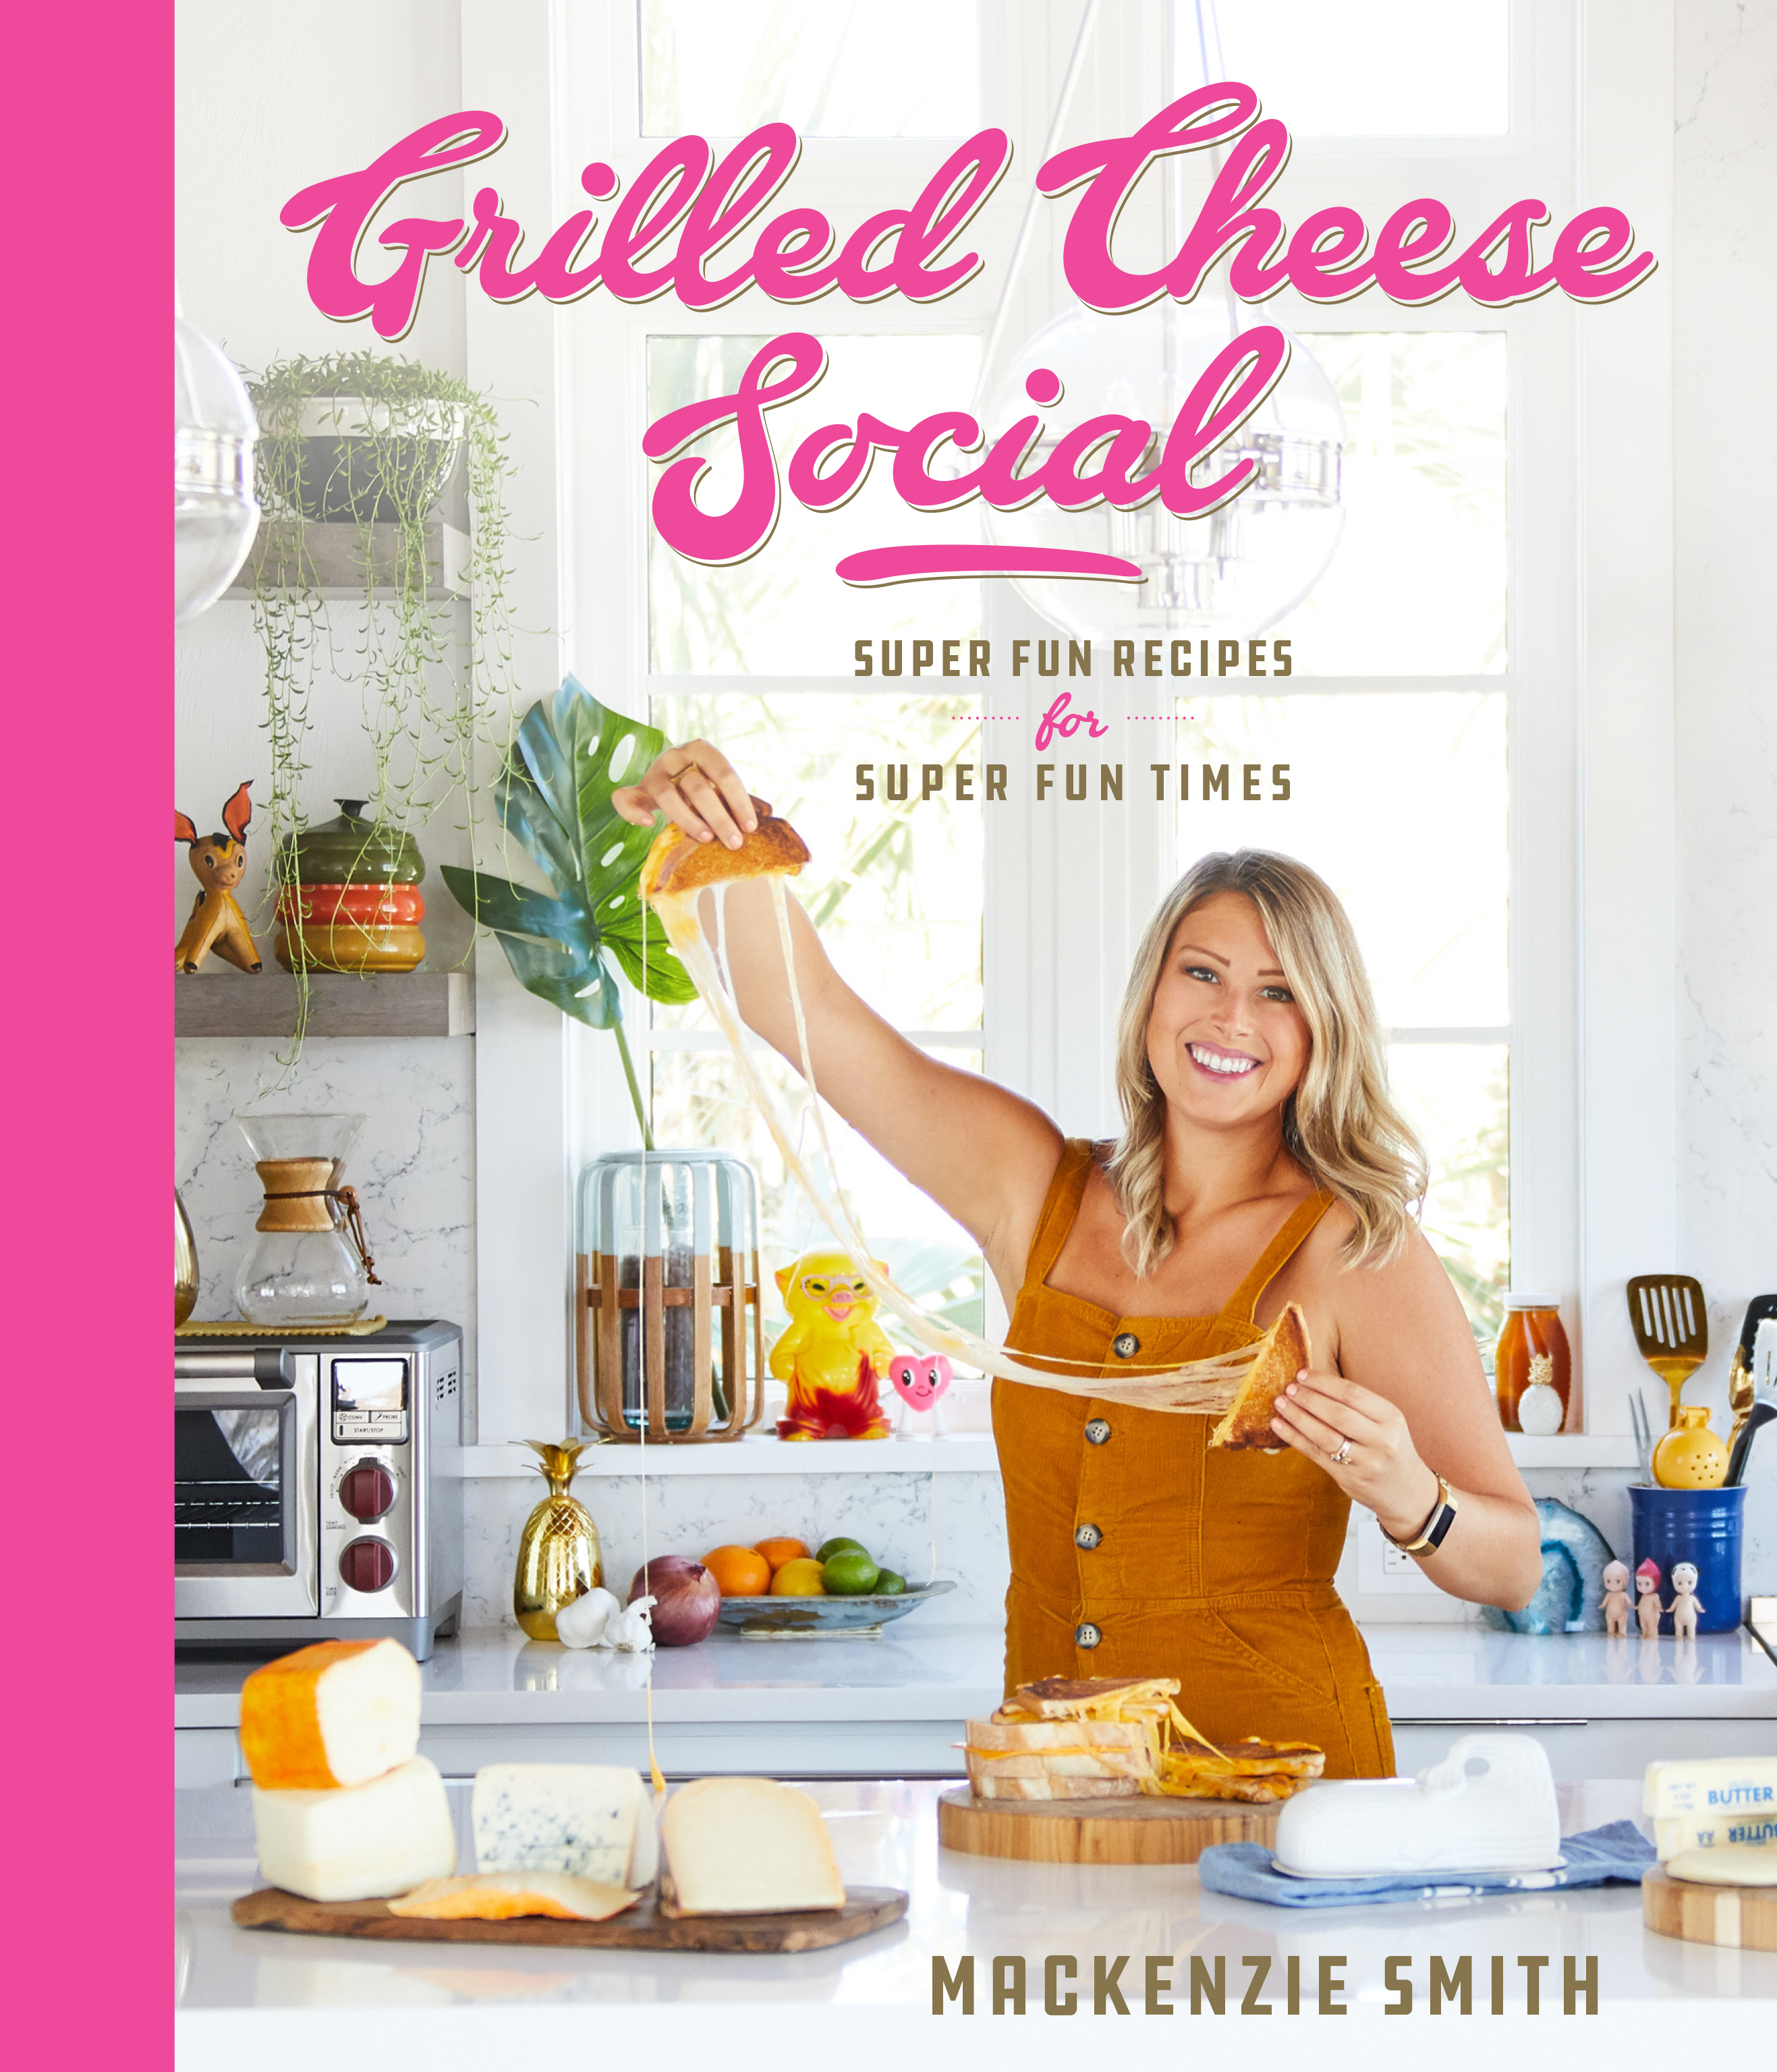 The Cover Grilled Cheese Social Book Cover - Super Fun Recipes for Super Fun Times - cookbook